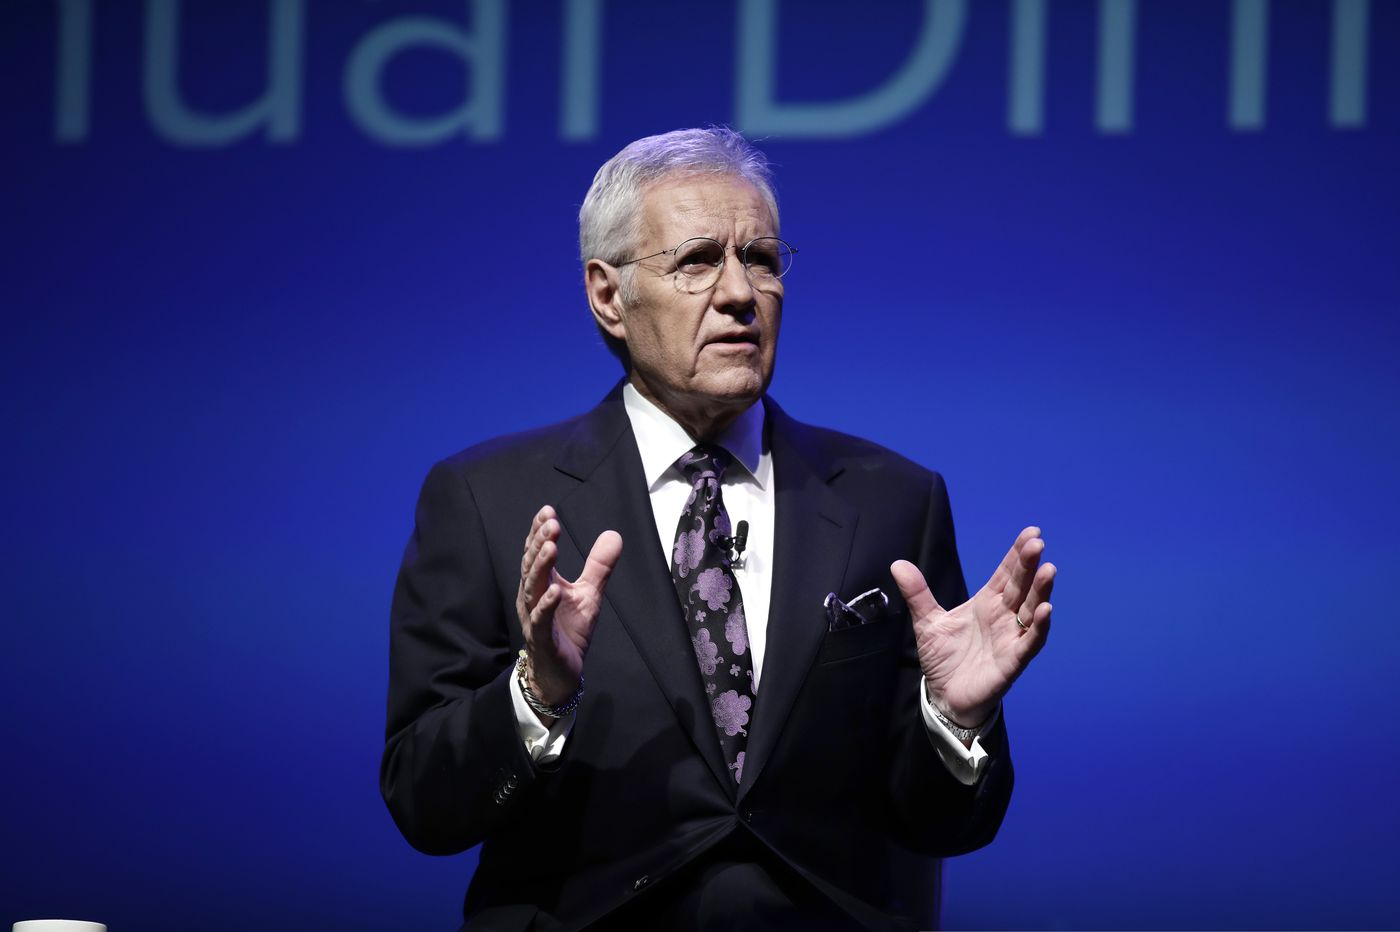 Alex Trebek has pancreatic cancer. So do a growing number of other Americans.